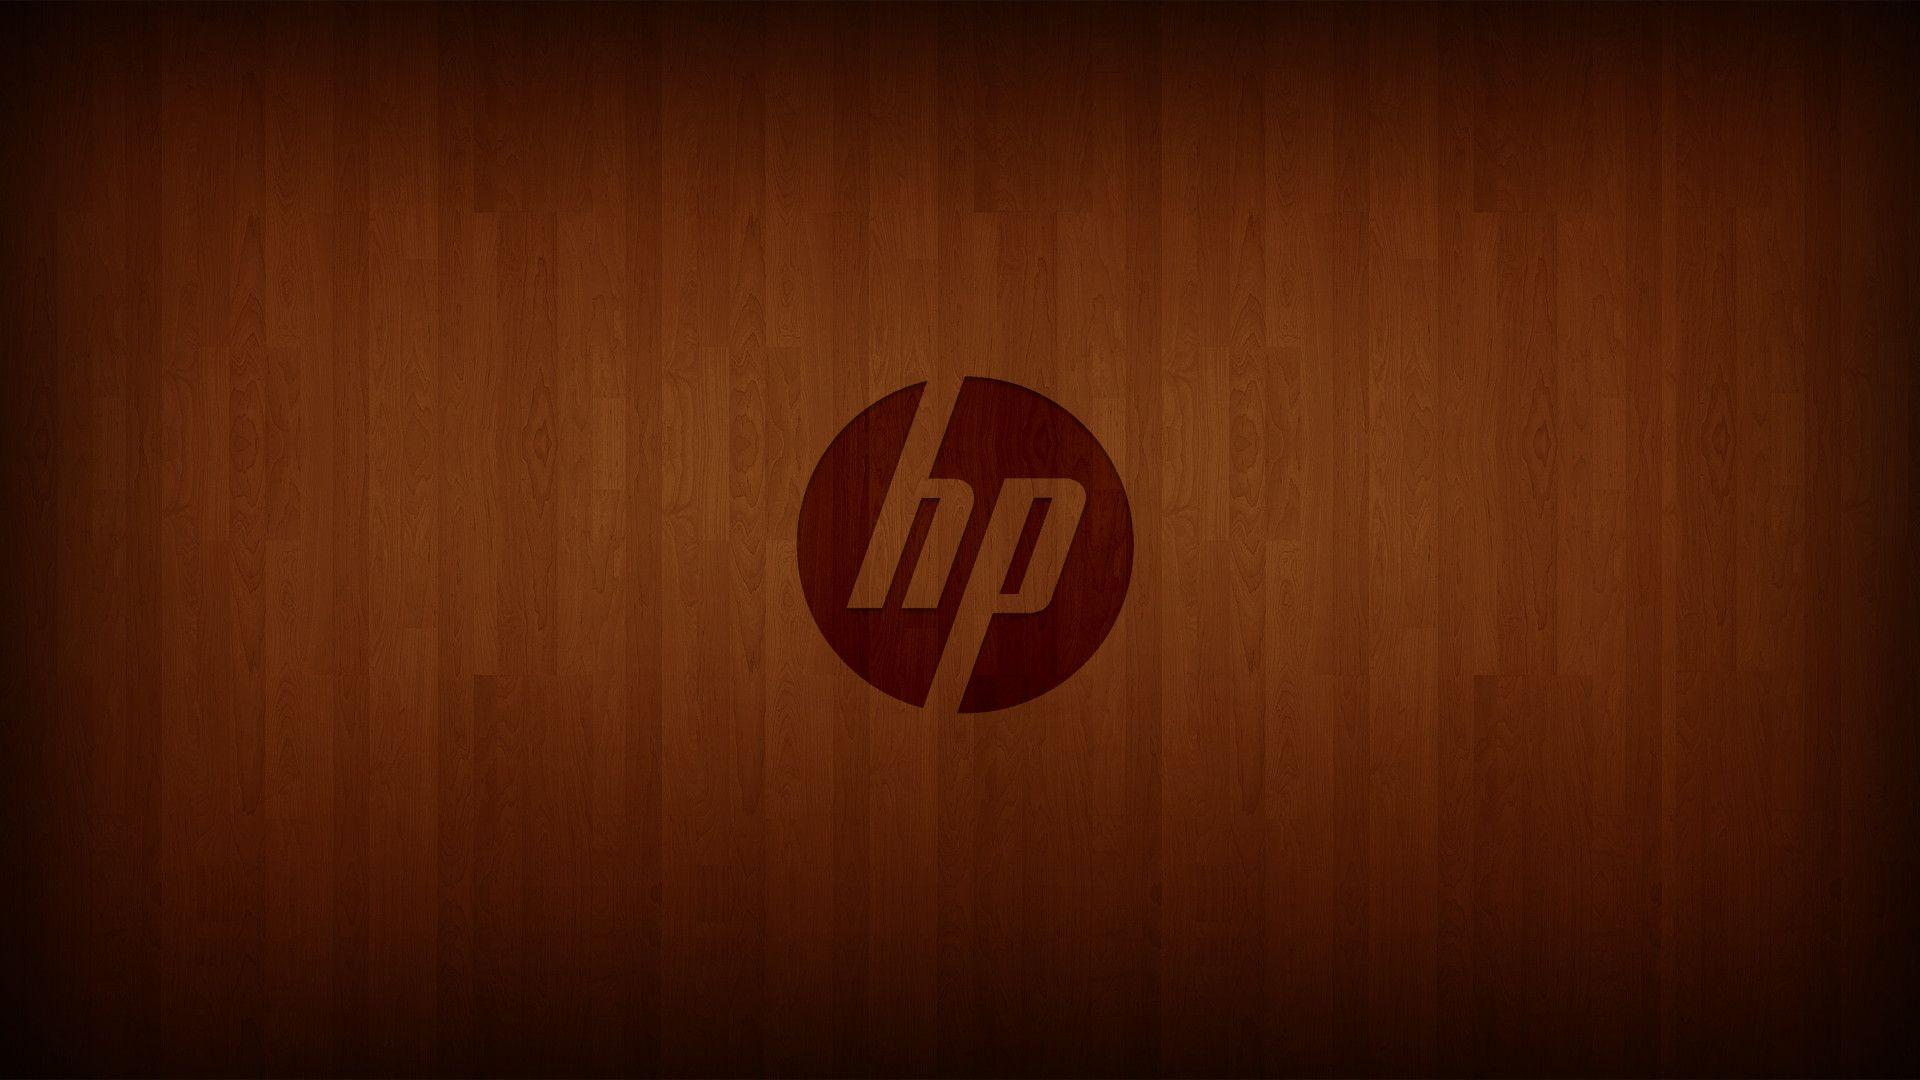 hp wallpaper 1920x1080, hp background pictures